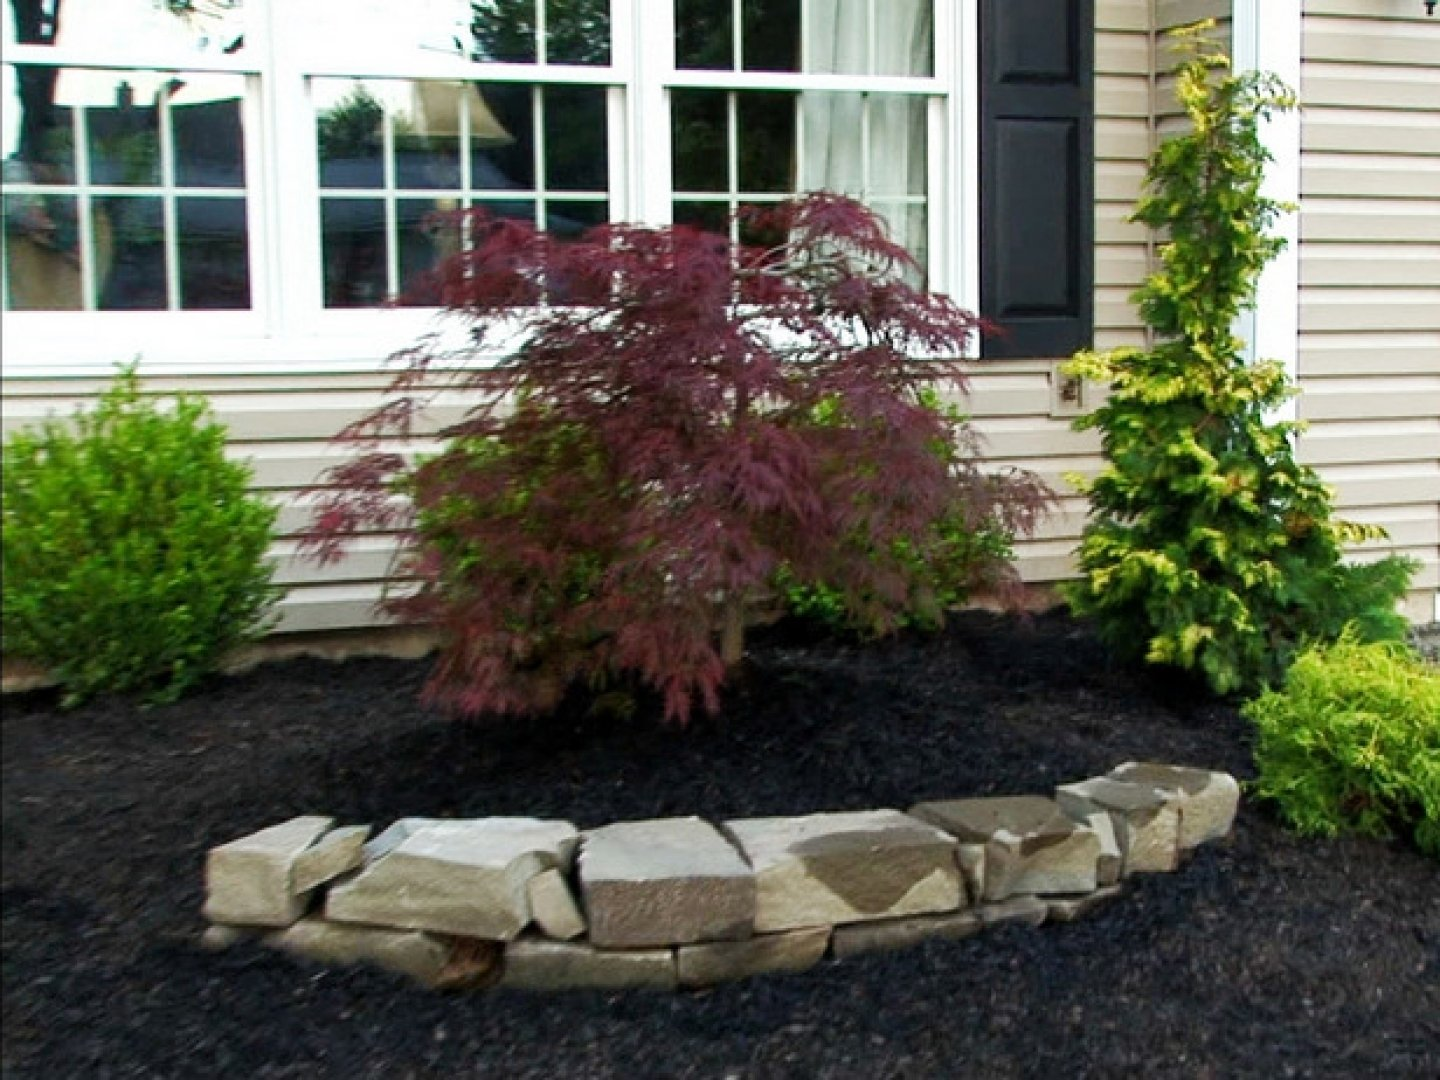 10 Wonderful Landscape Ideas For Small Front Yards small front yard landscaping ideas the landscape design plus for 2020